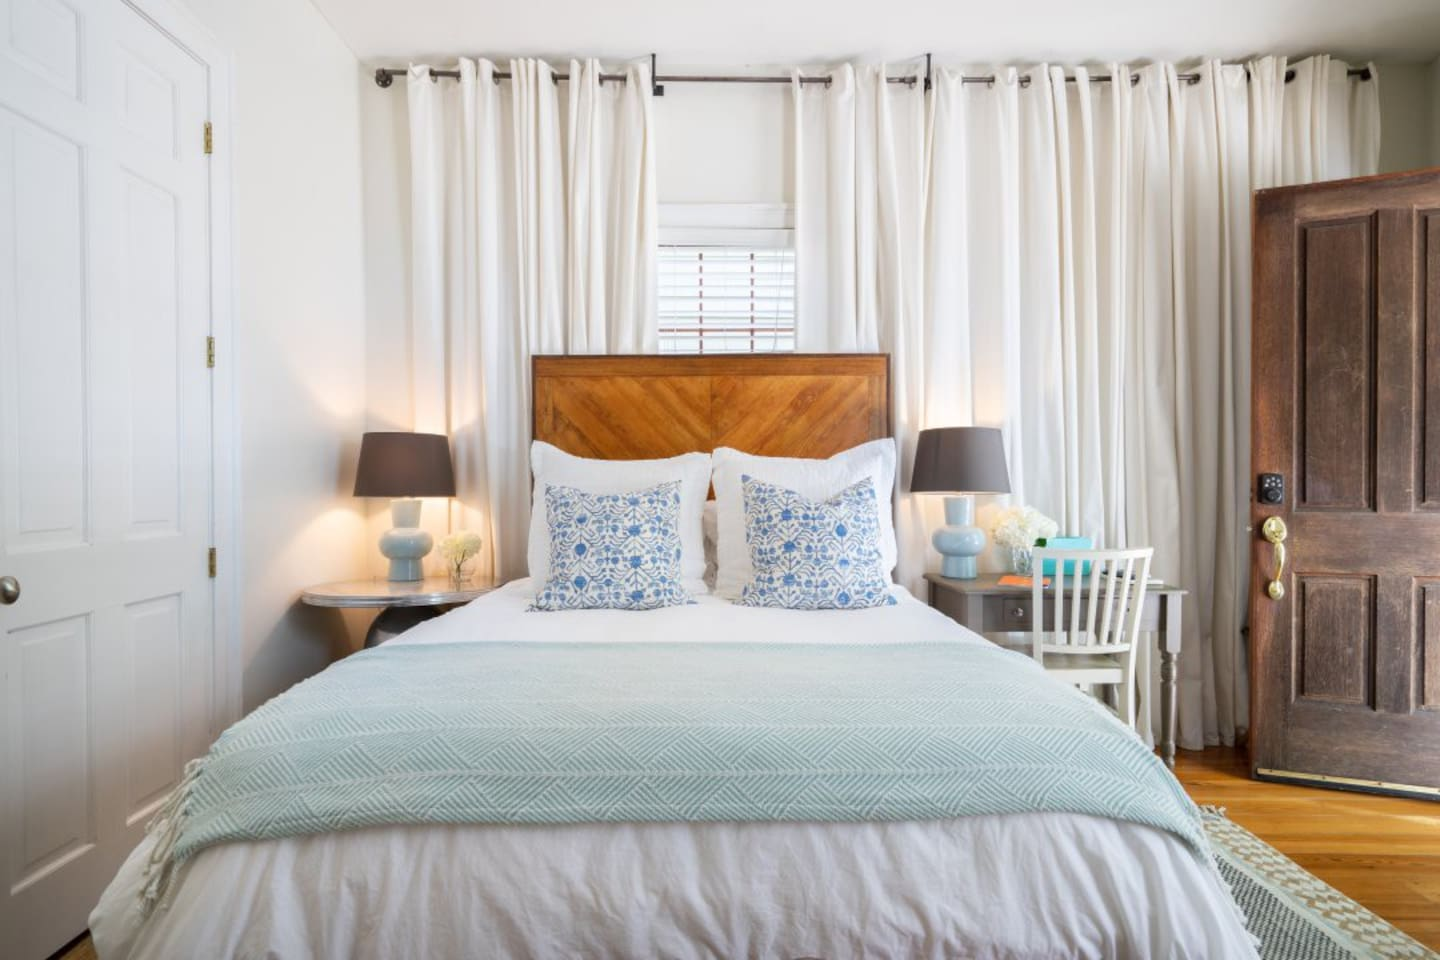 A luxury and private studio apartment, filled with light, steps from magazine street, and a bed made up with luxury linens.